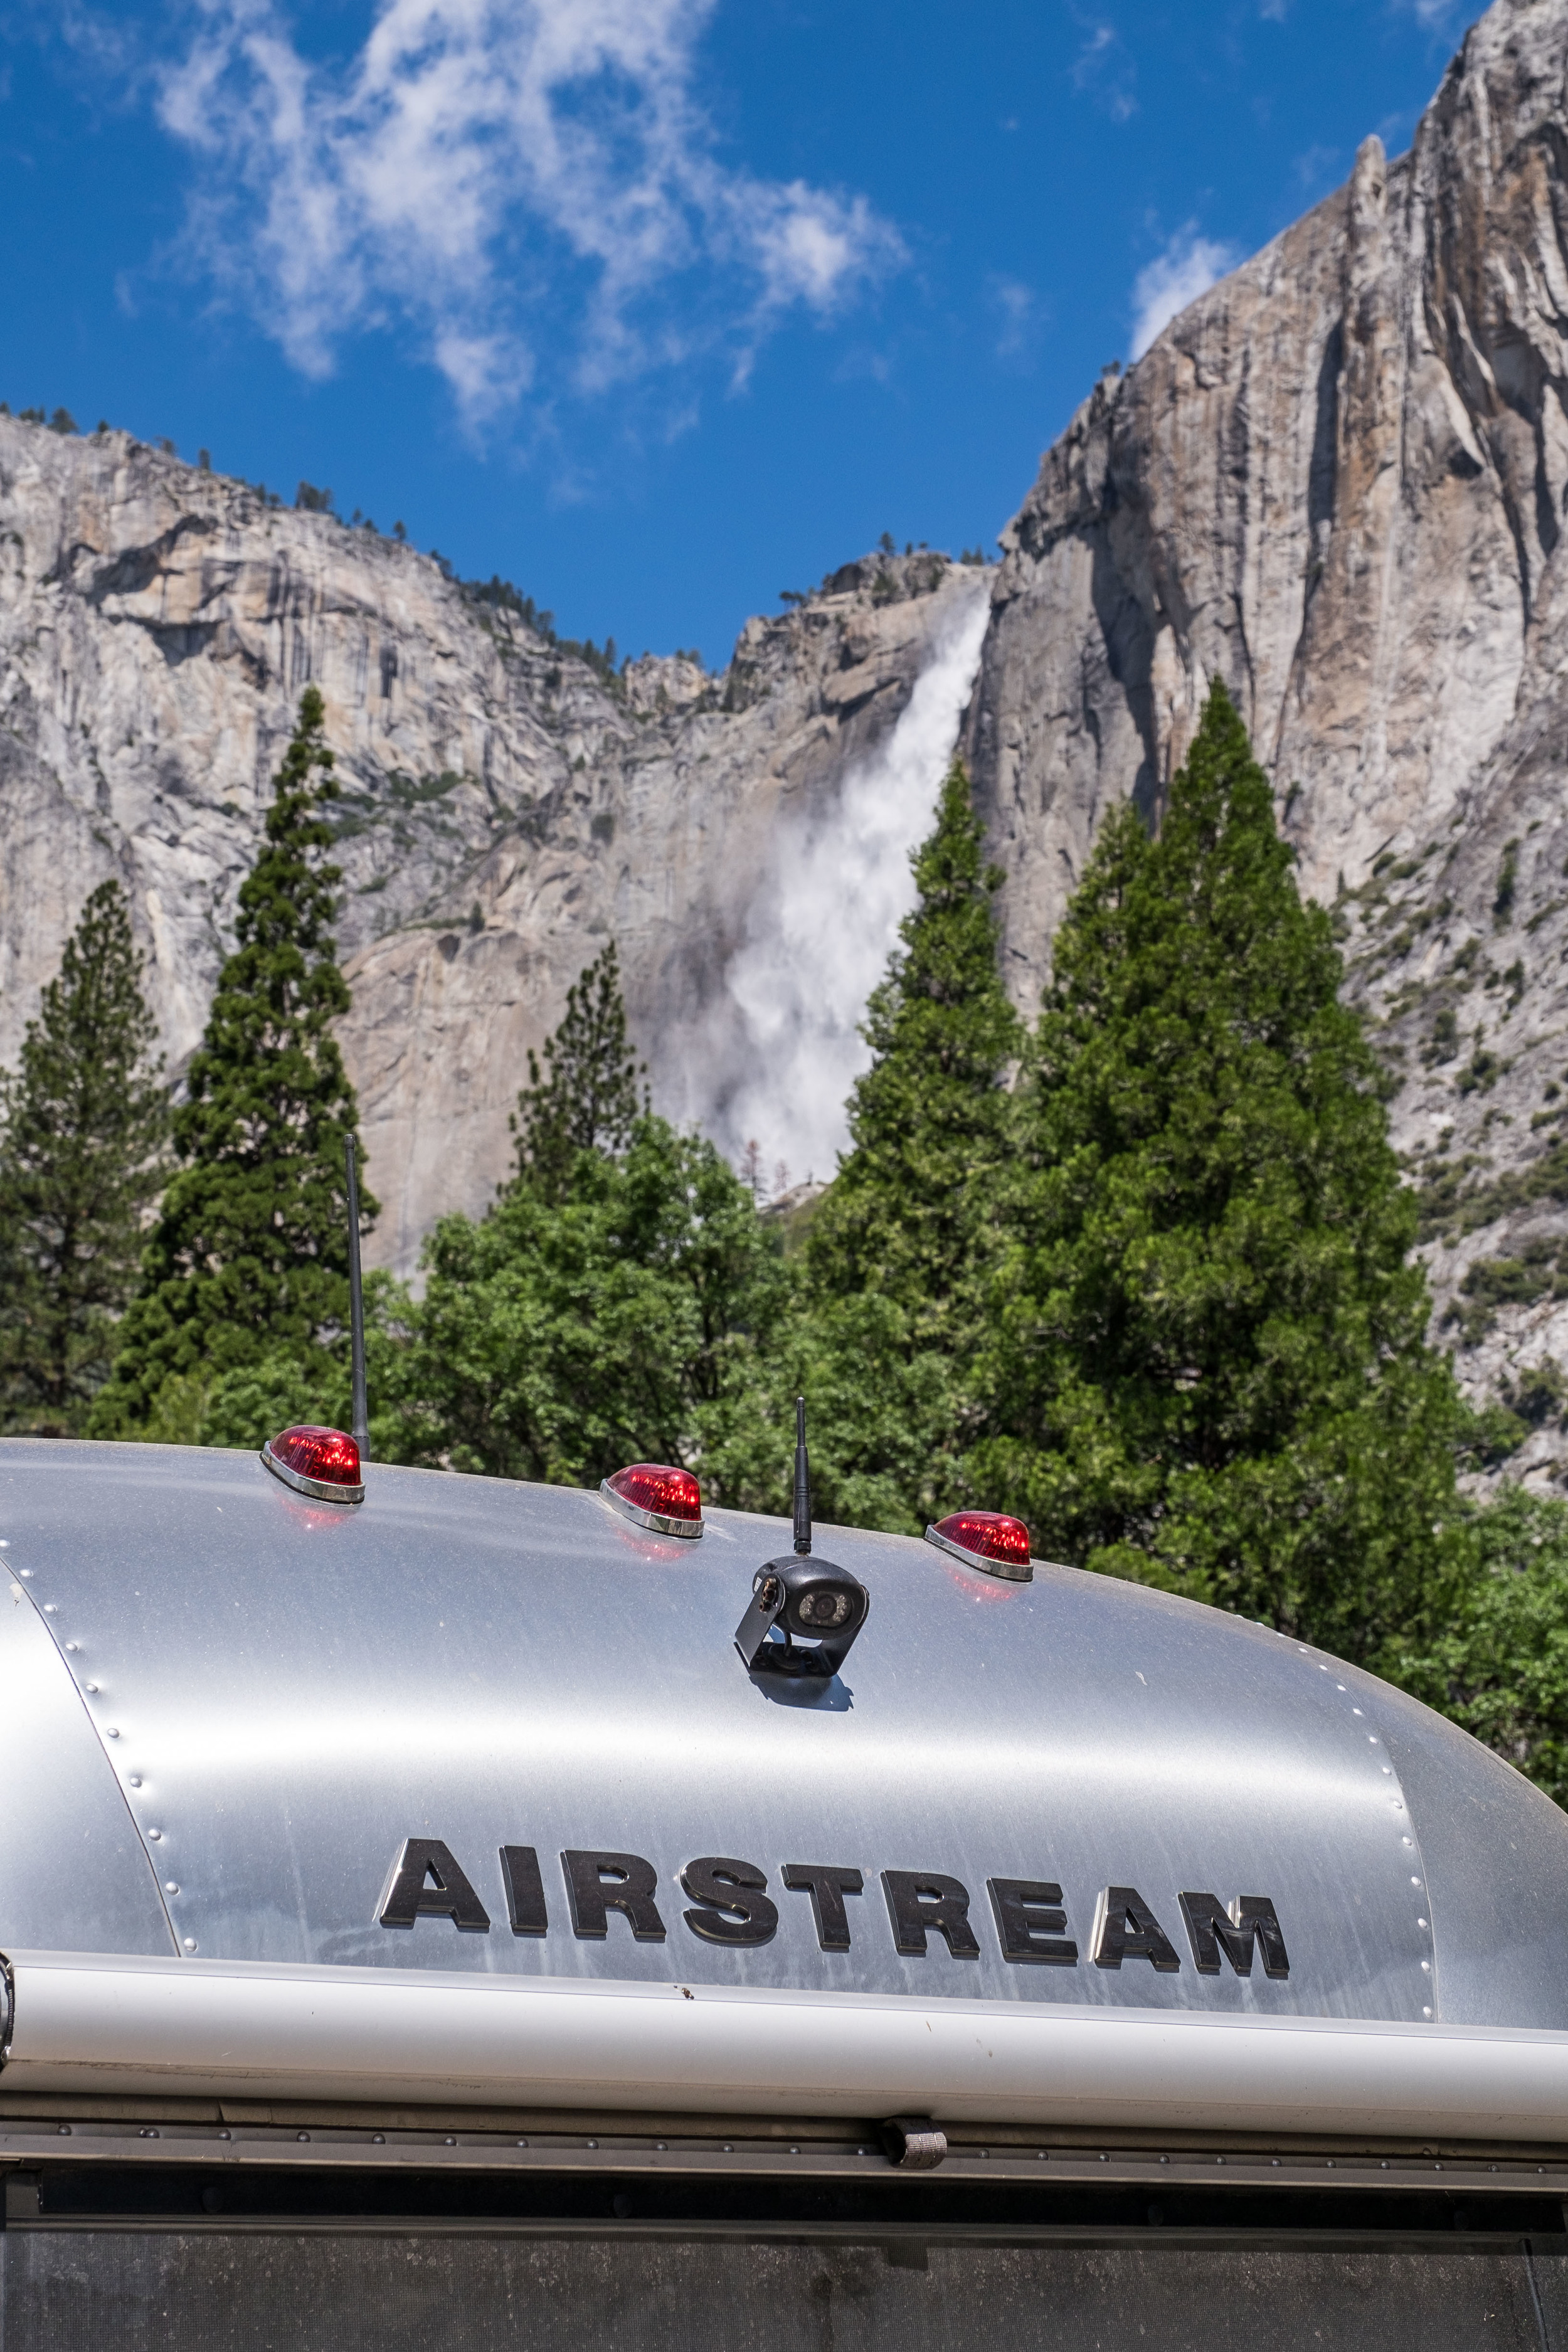 The Airstream takes on Yosemite National Park in sunny California.